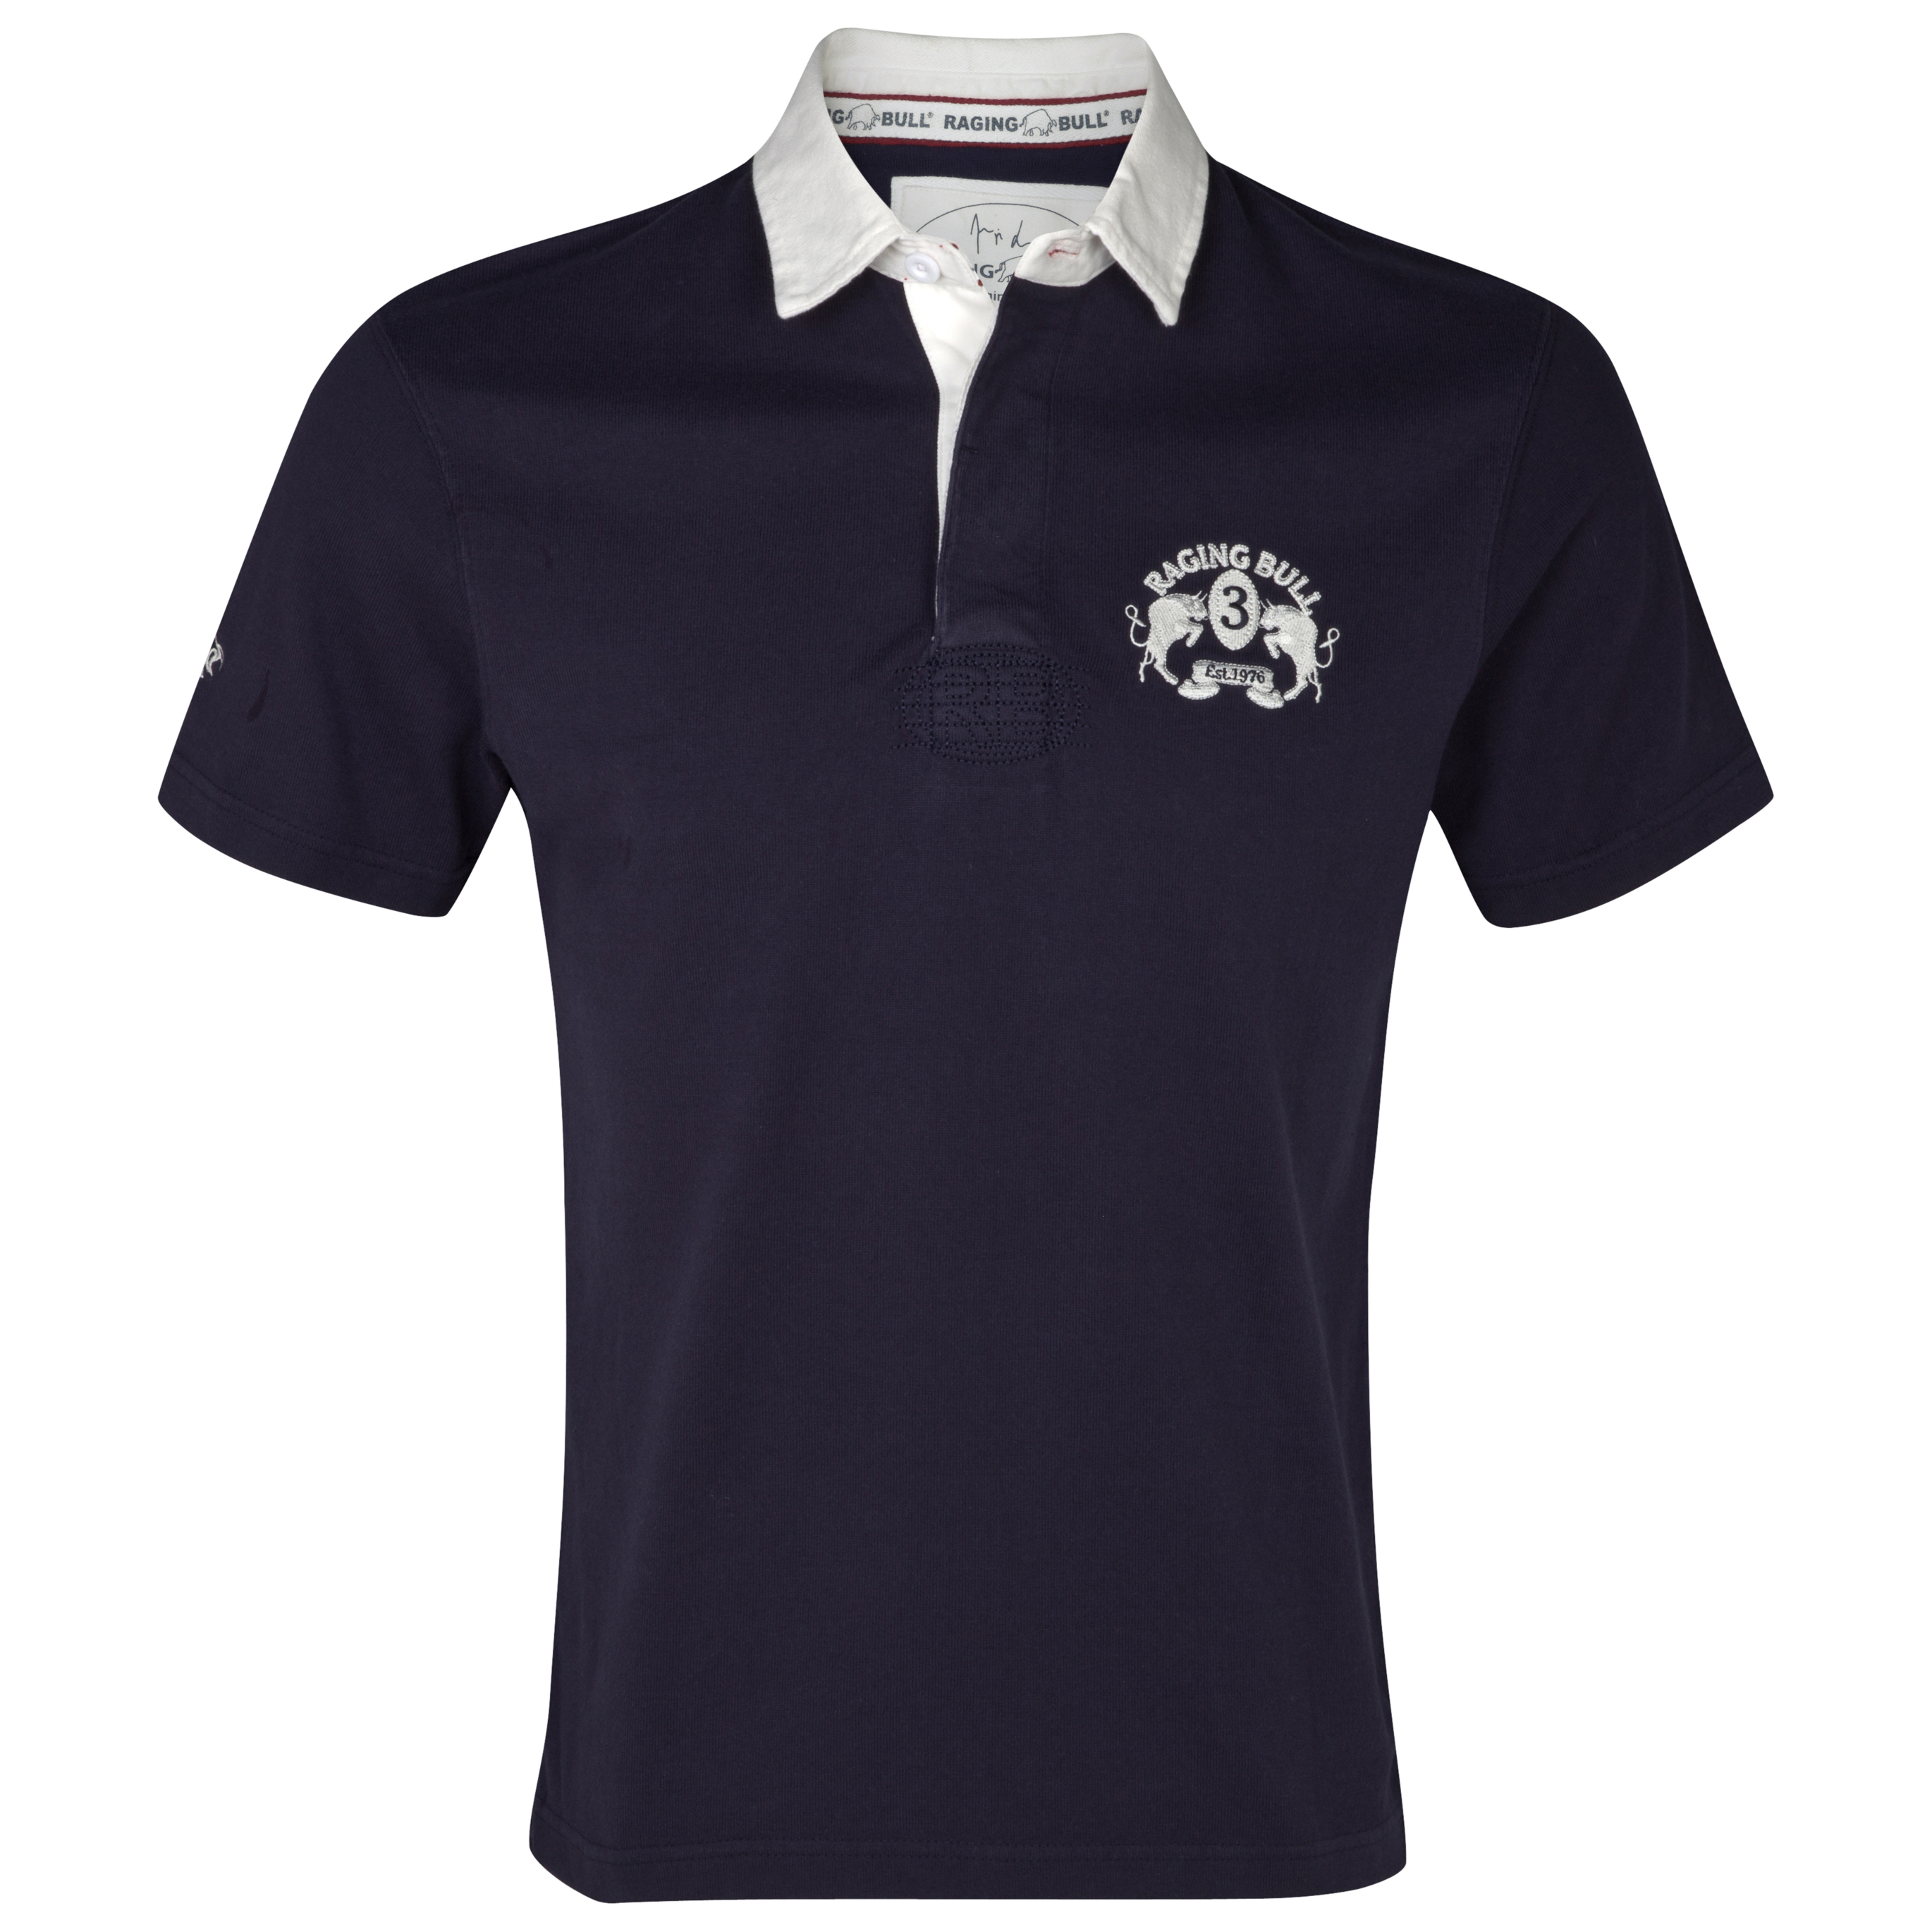 Raging Bull Signature Crest Rugby Shirt - Navy